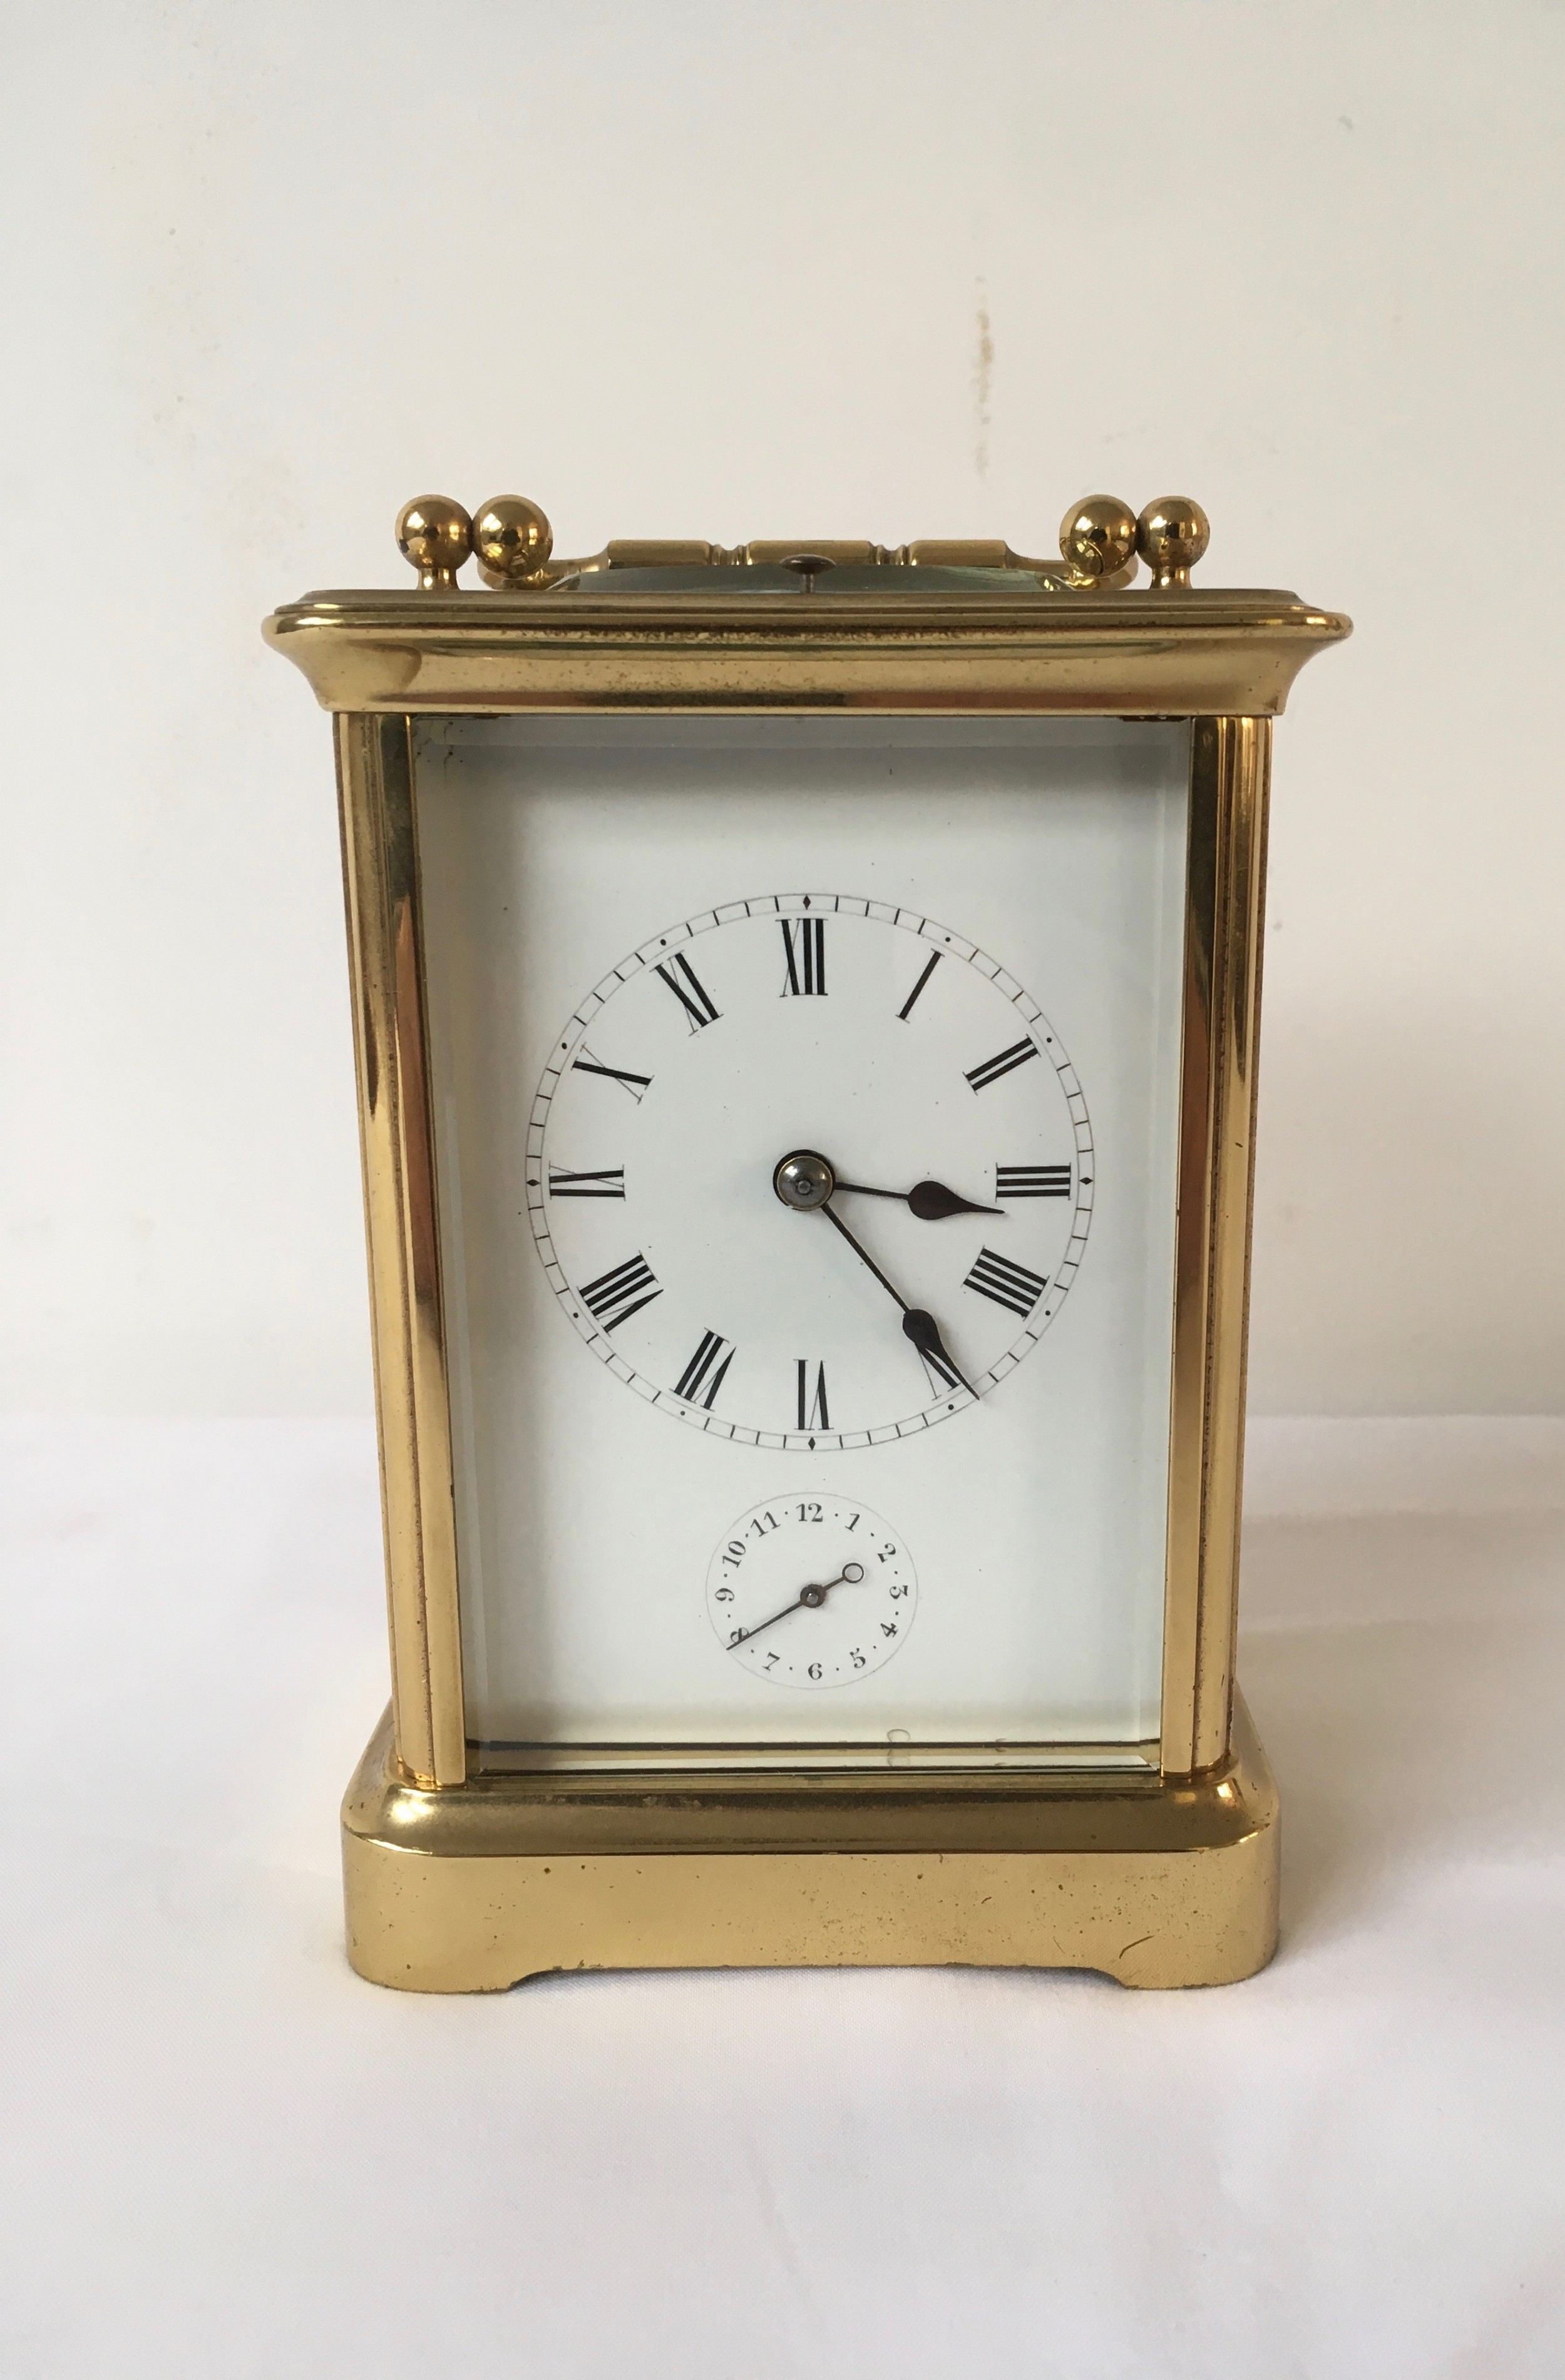 brass striking repeater carriage clock with alarm